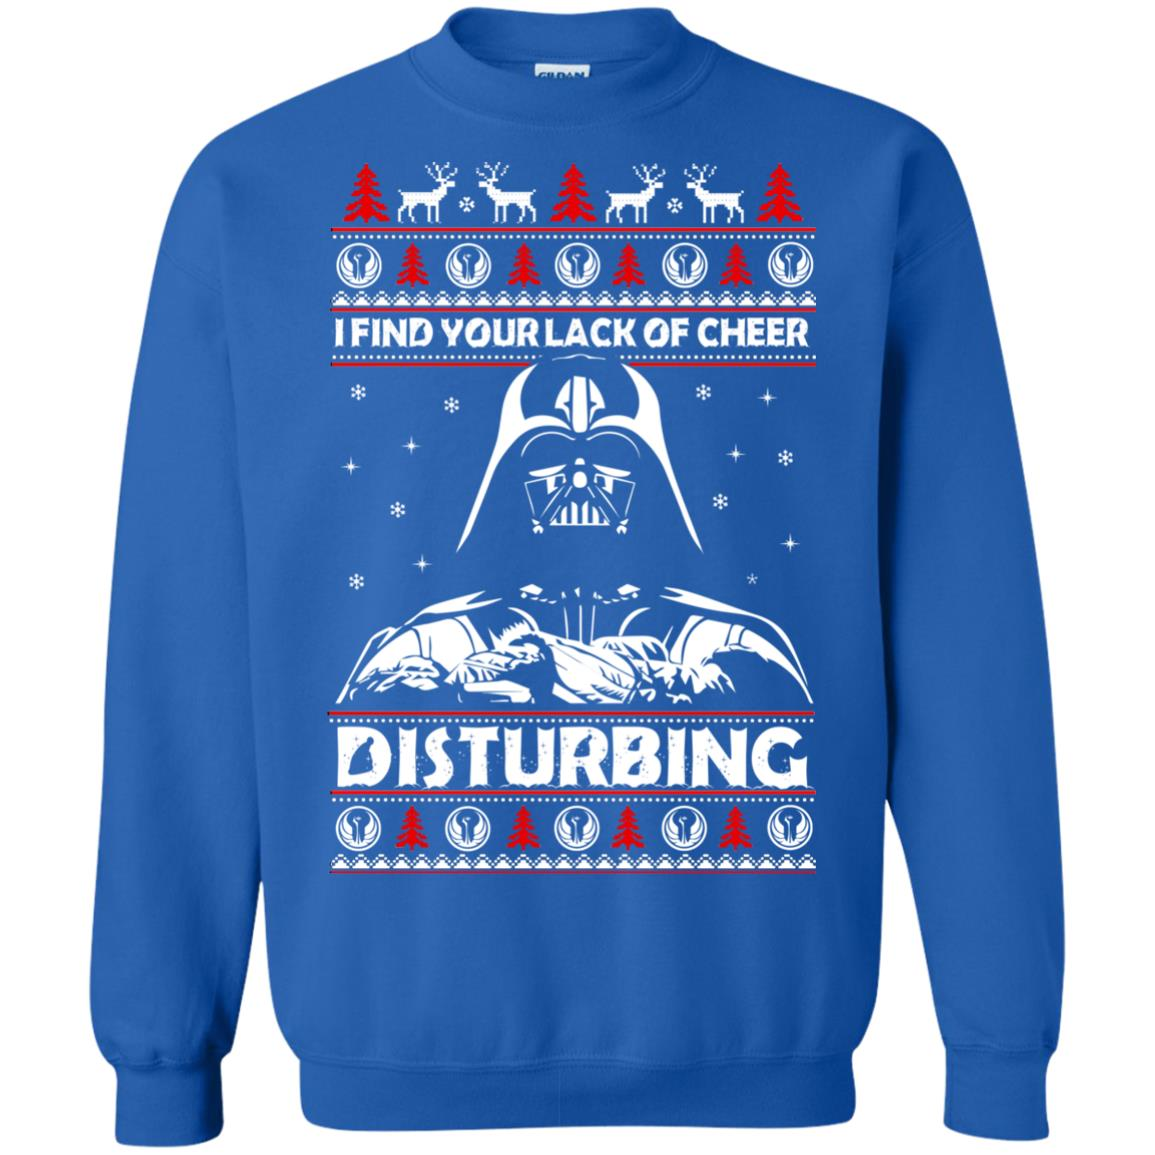 image 1768 - Darth Vader: I Find Your Lack of Cheer Disturbing Sweater, Shirt